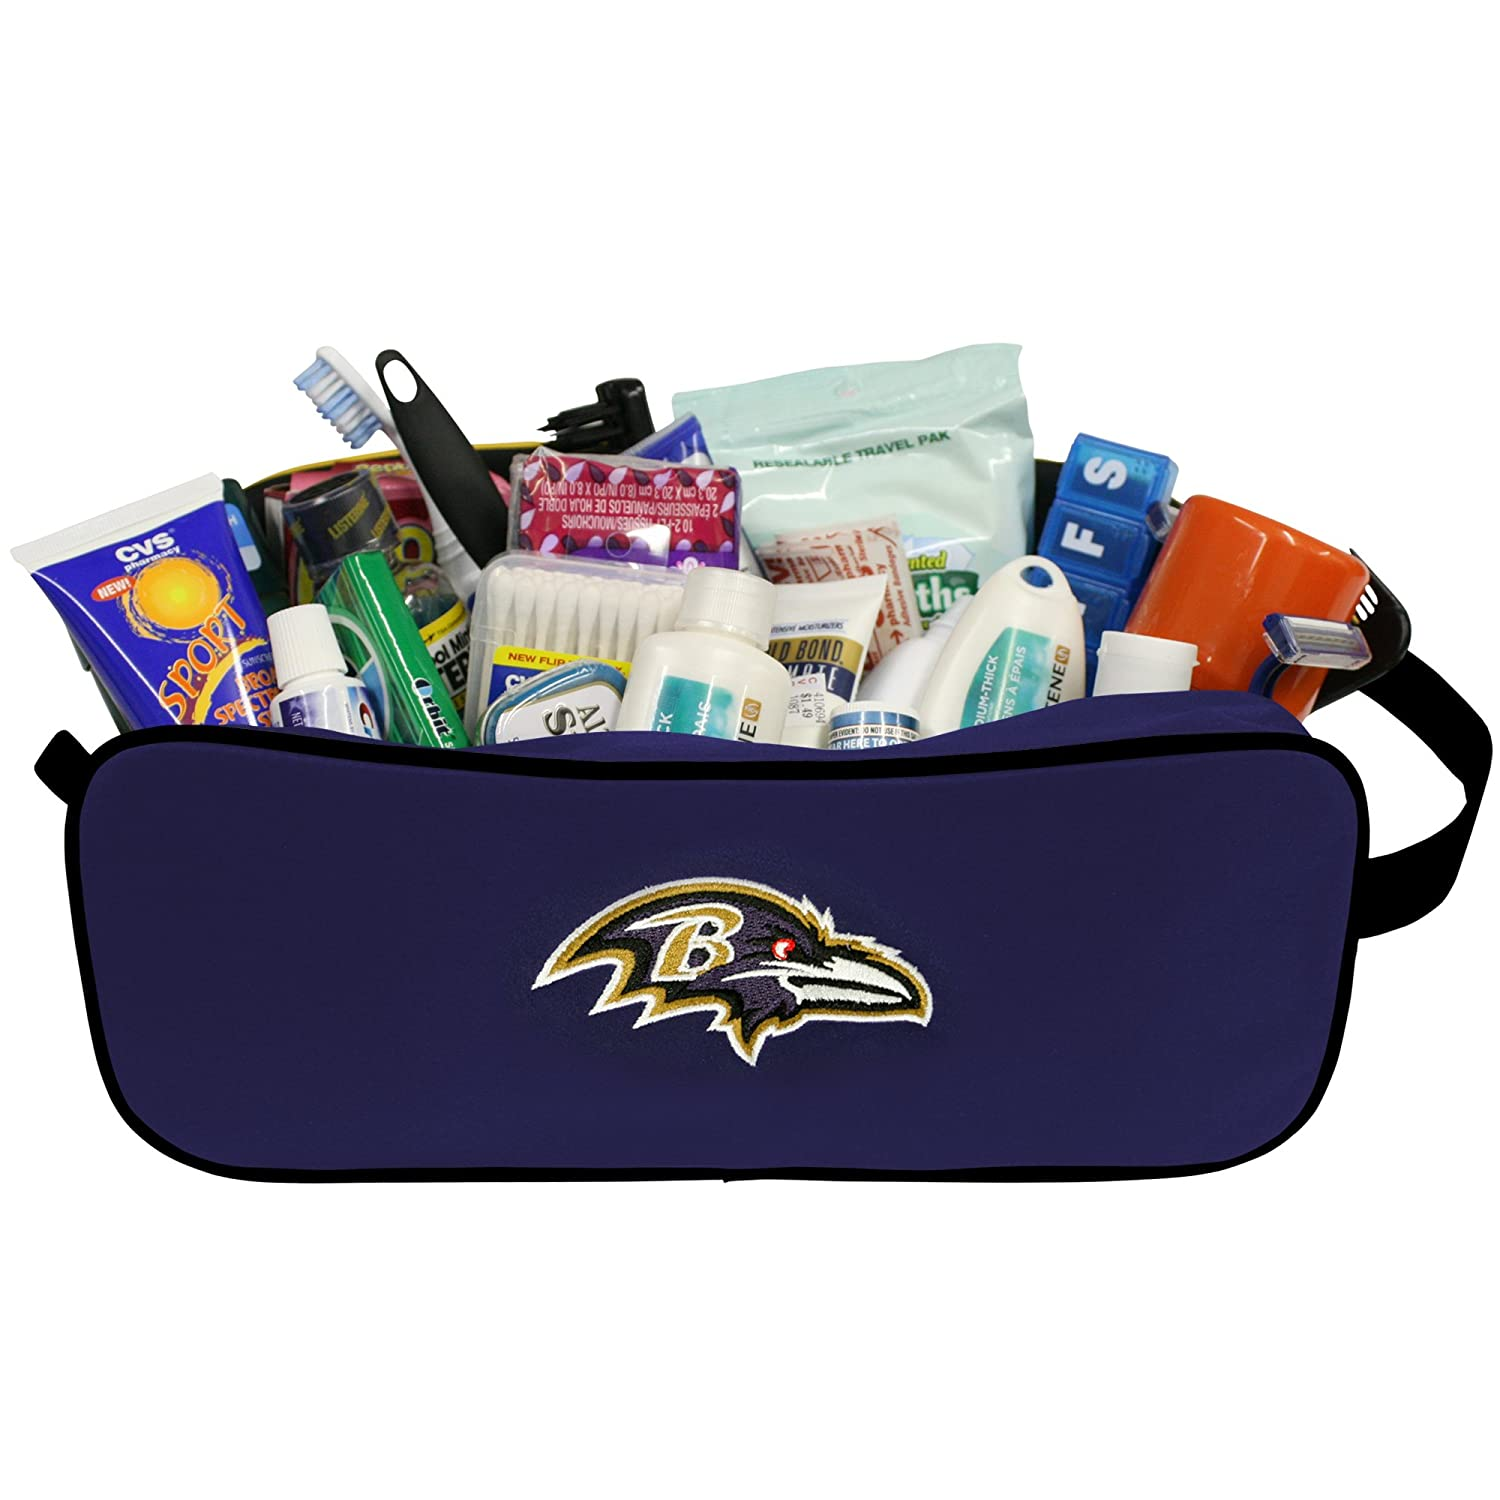 f6f37ed6bac6 Amazon.com : NFL Baltimore Ravens Unisex Travel Case-Toiletry Bag ...